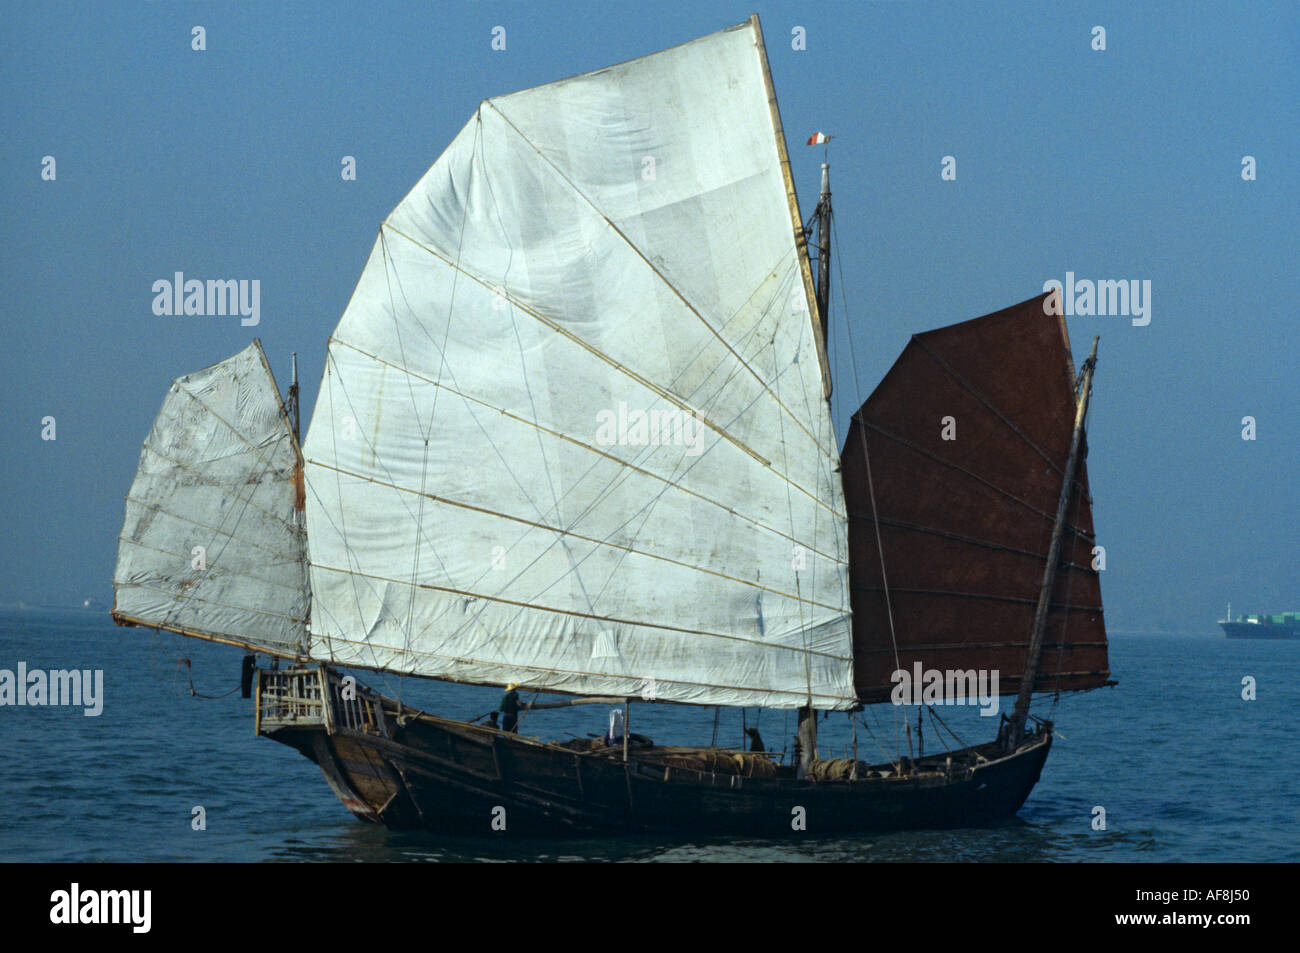 Stern & side view of traditional genuine old local sailing junk in the late 1970s in Victoria Harbour Hong Kong Island China - Stock Image